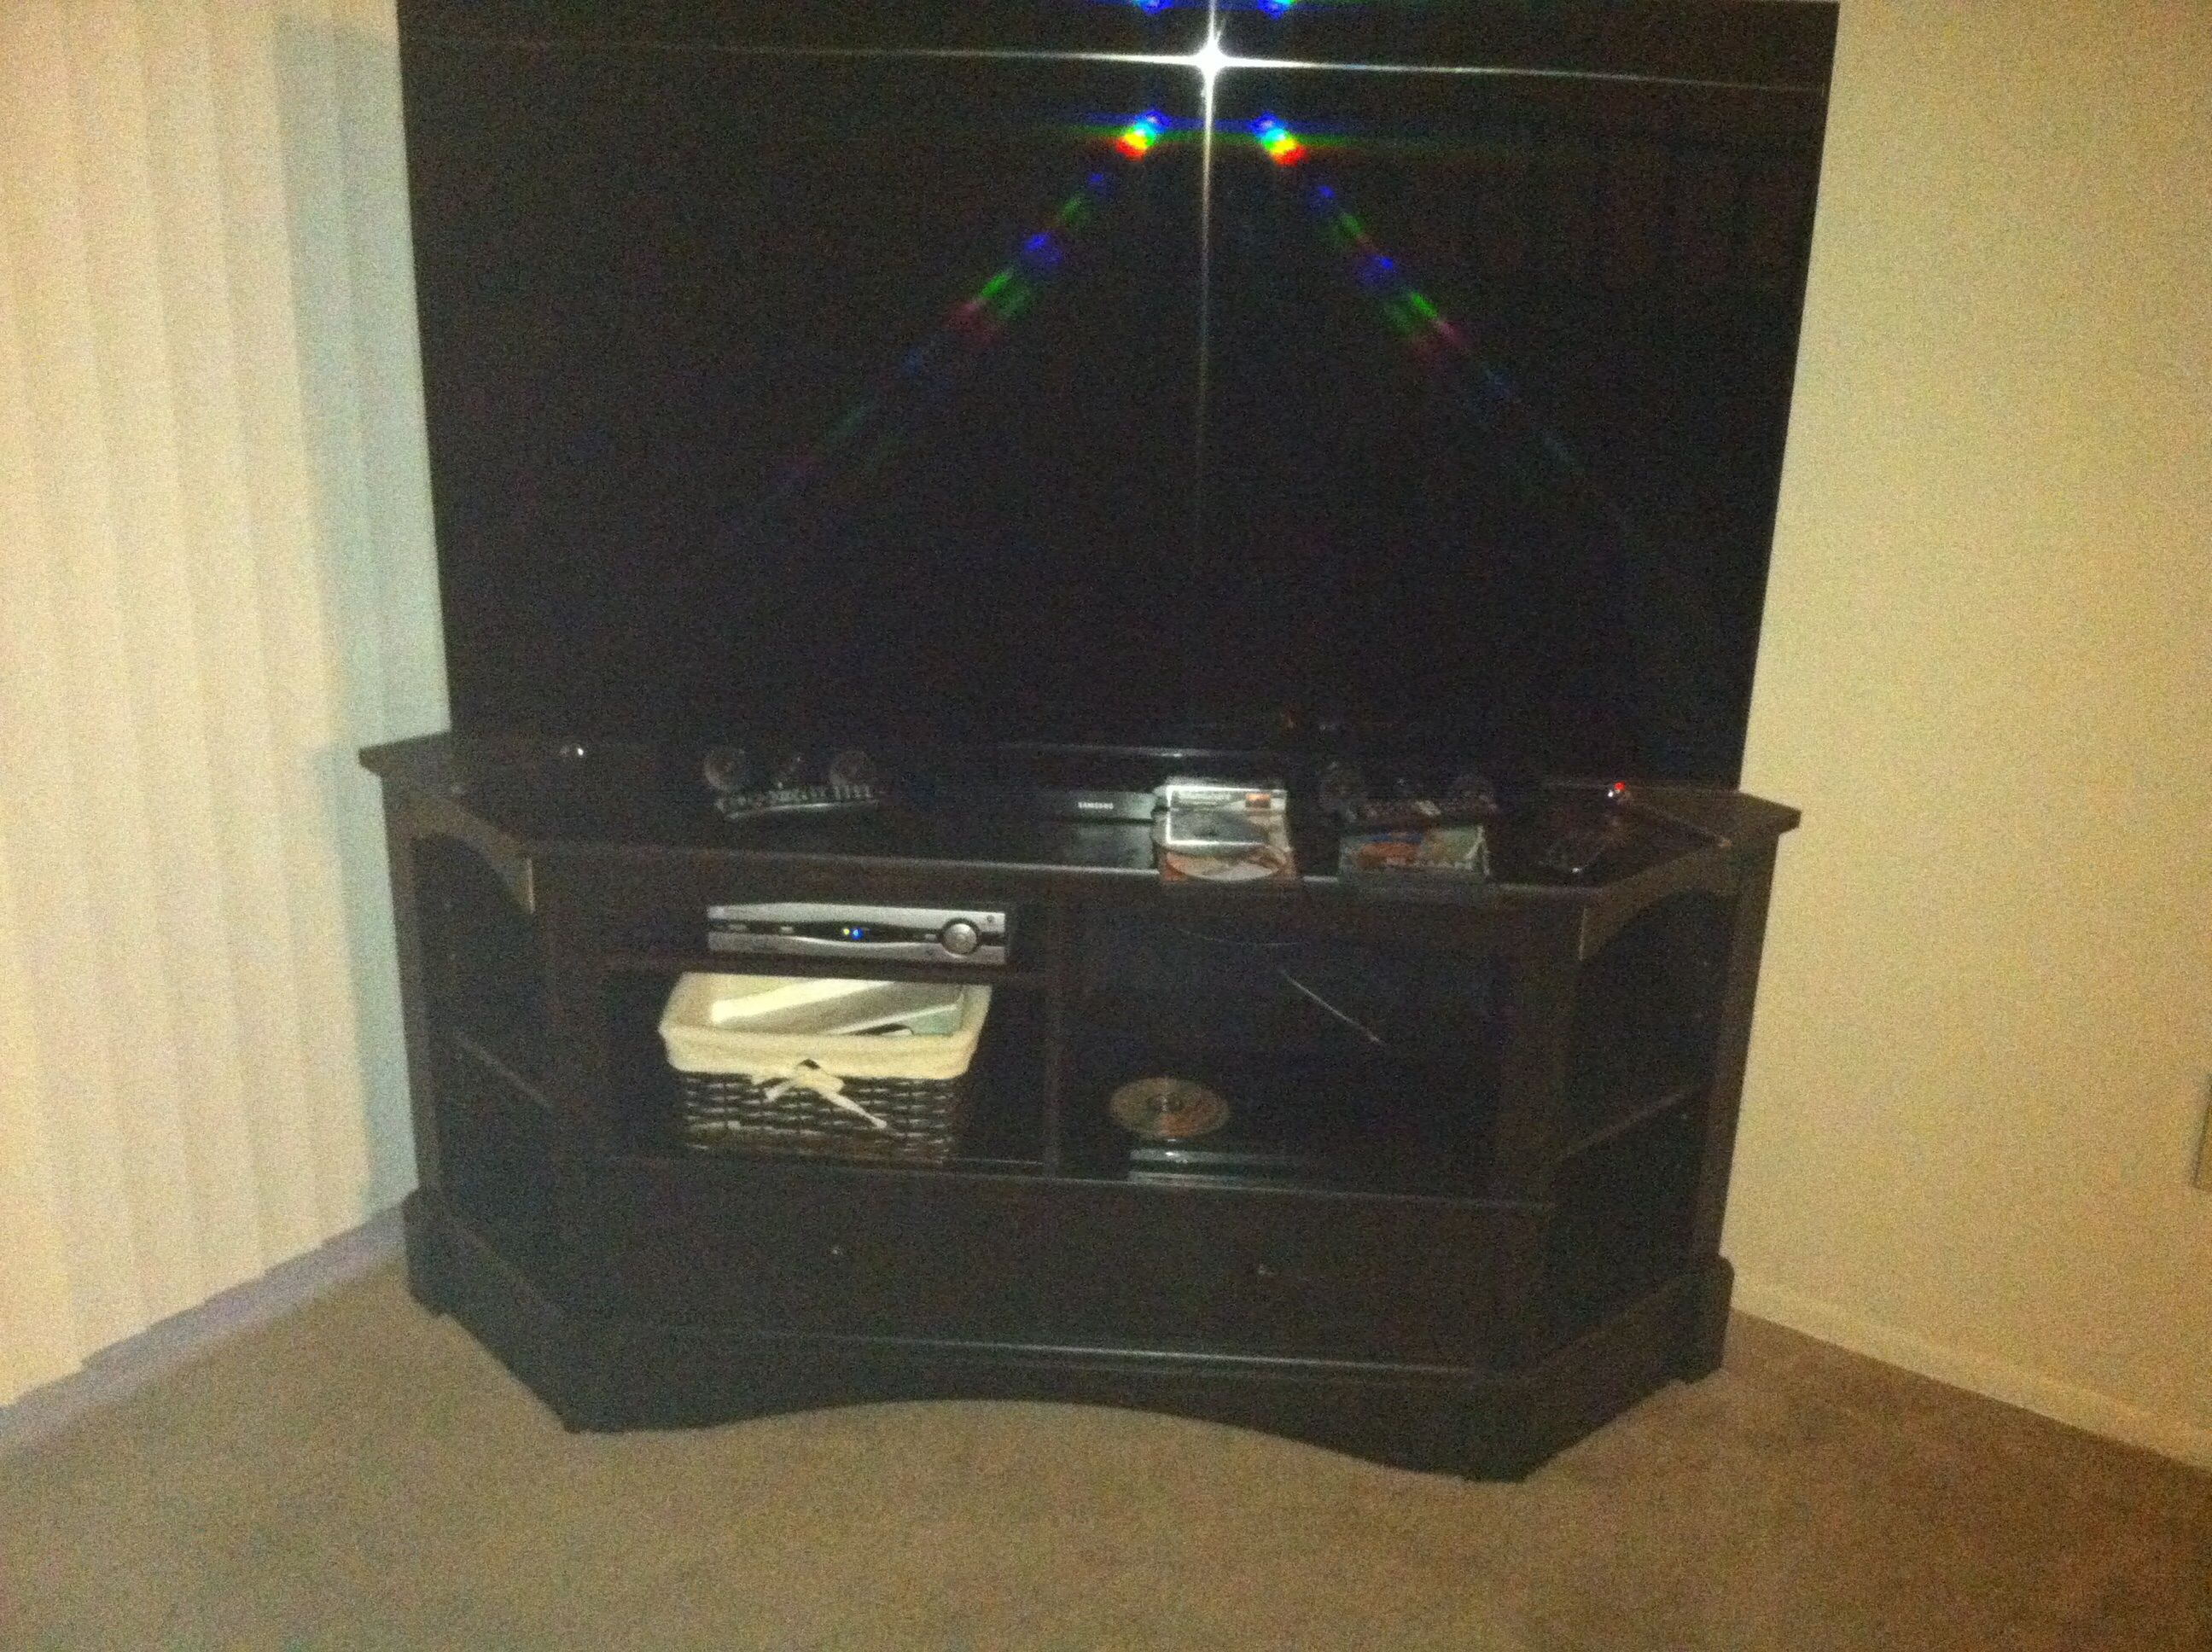 70 inches tv corner stand in Moving7's Garage Sale Canton